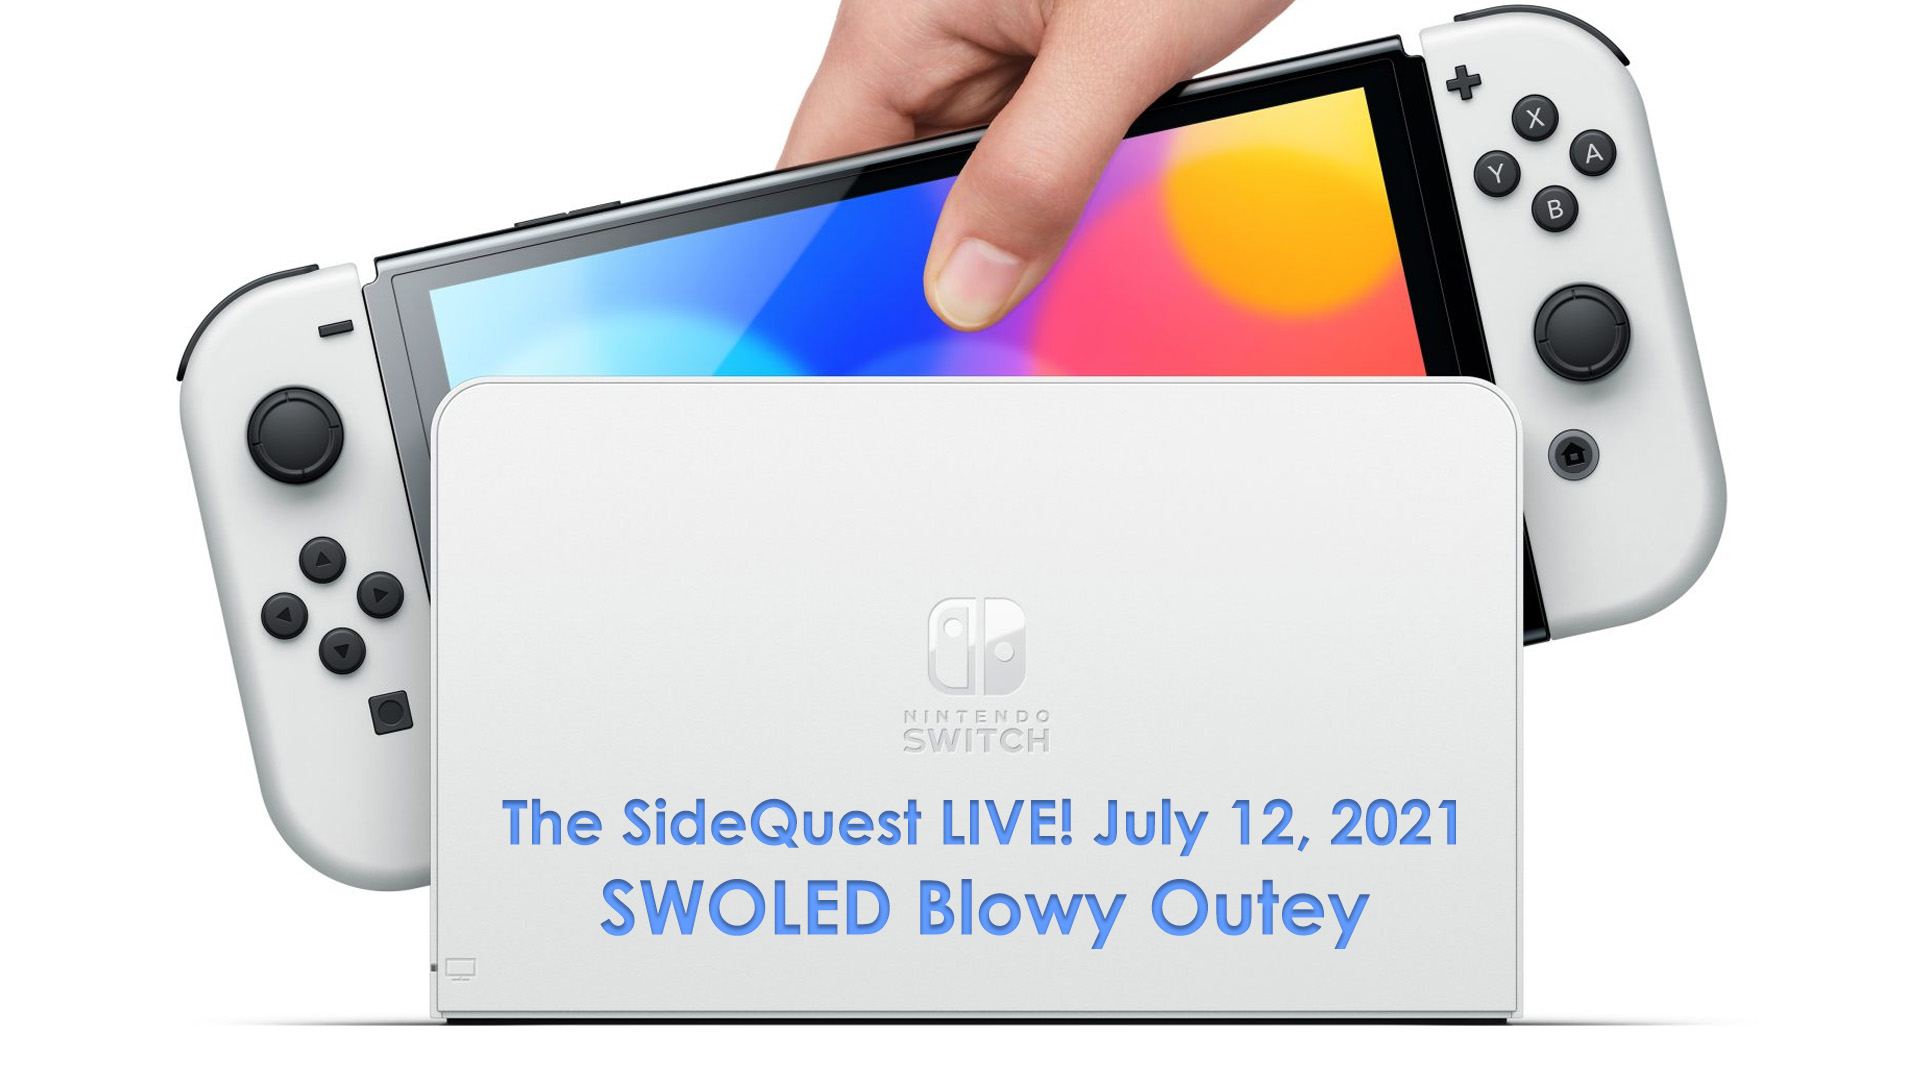 The SideQuest LIVE! July 12, 2021: SWOLED Blowy Outey